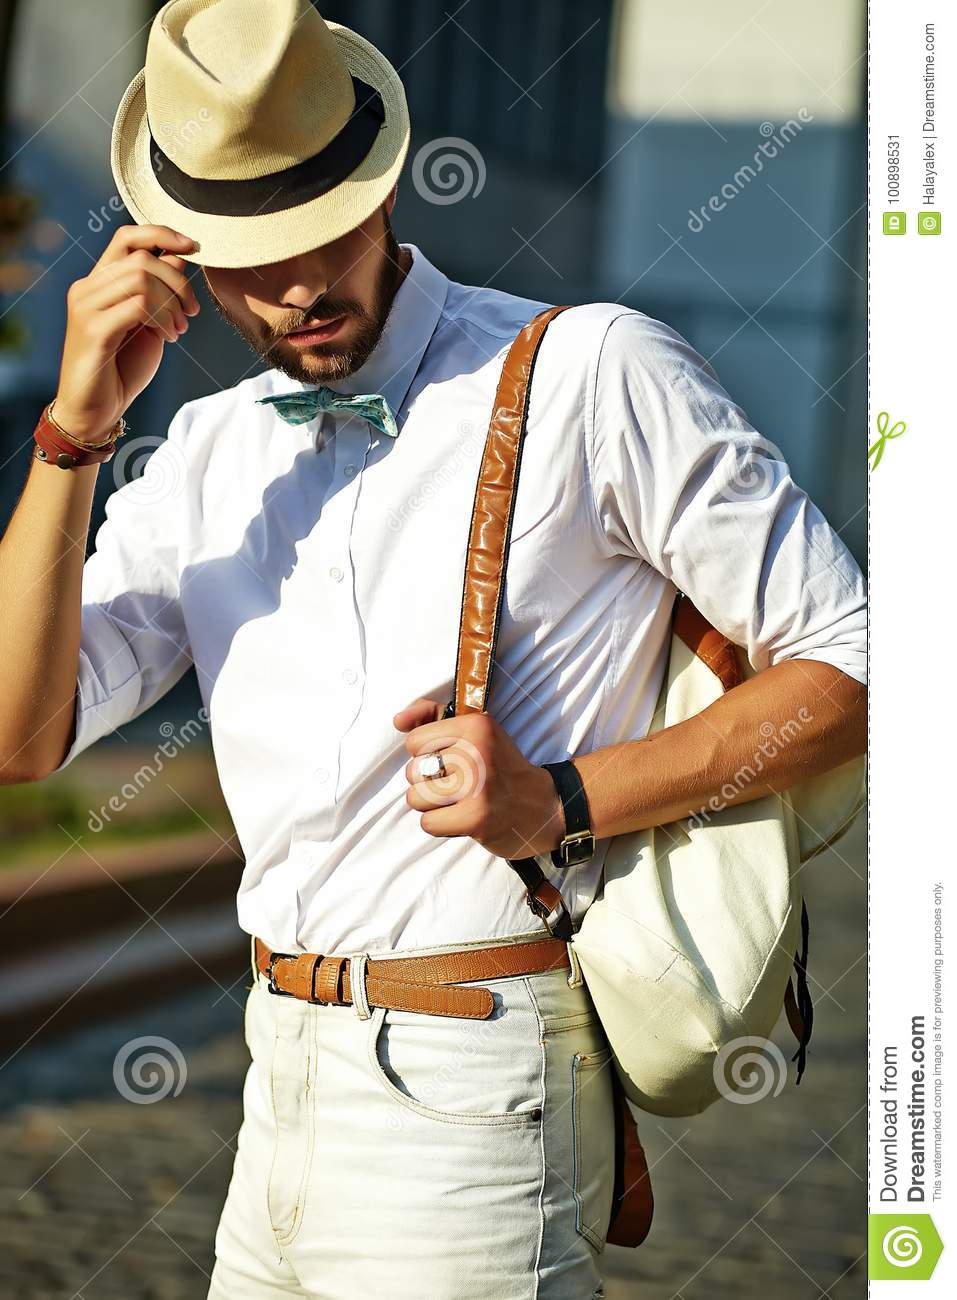 e1c61df7a134 Handsome hipster model man in stylish summer clothes posing on street  background in hat with bag